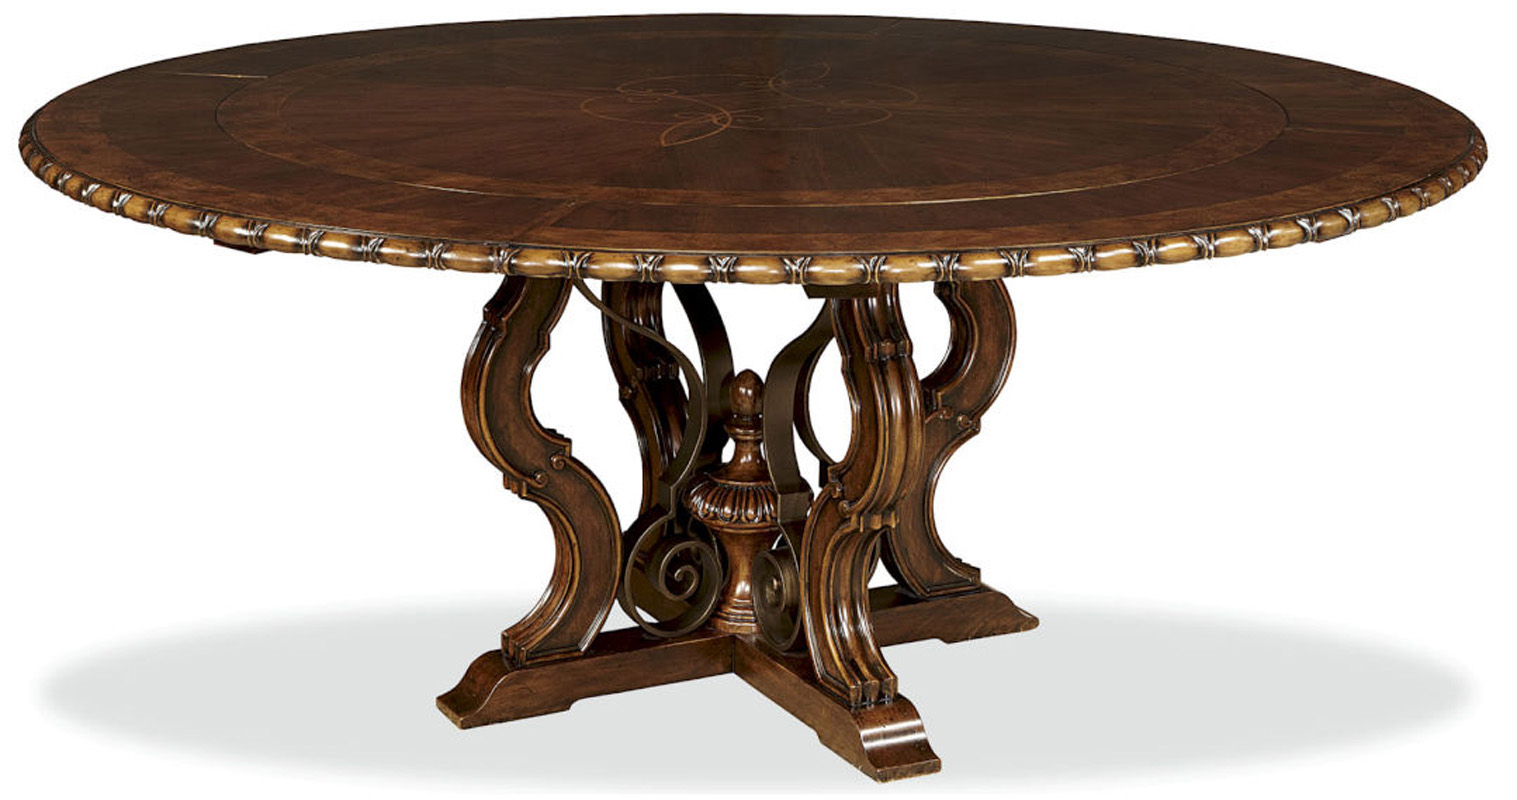 Unique cherry 76 round dining table with leaves ebay for Unique round kitchen tables